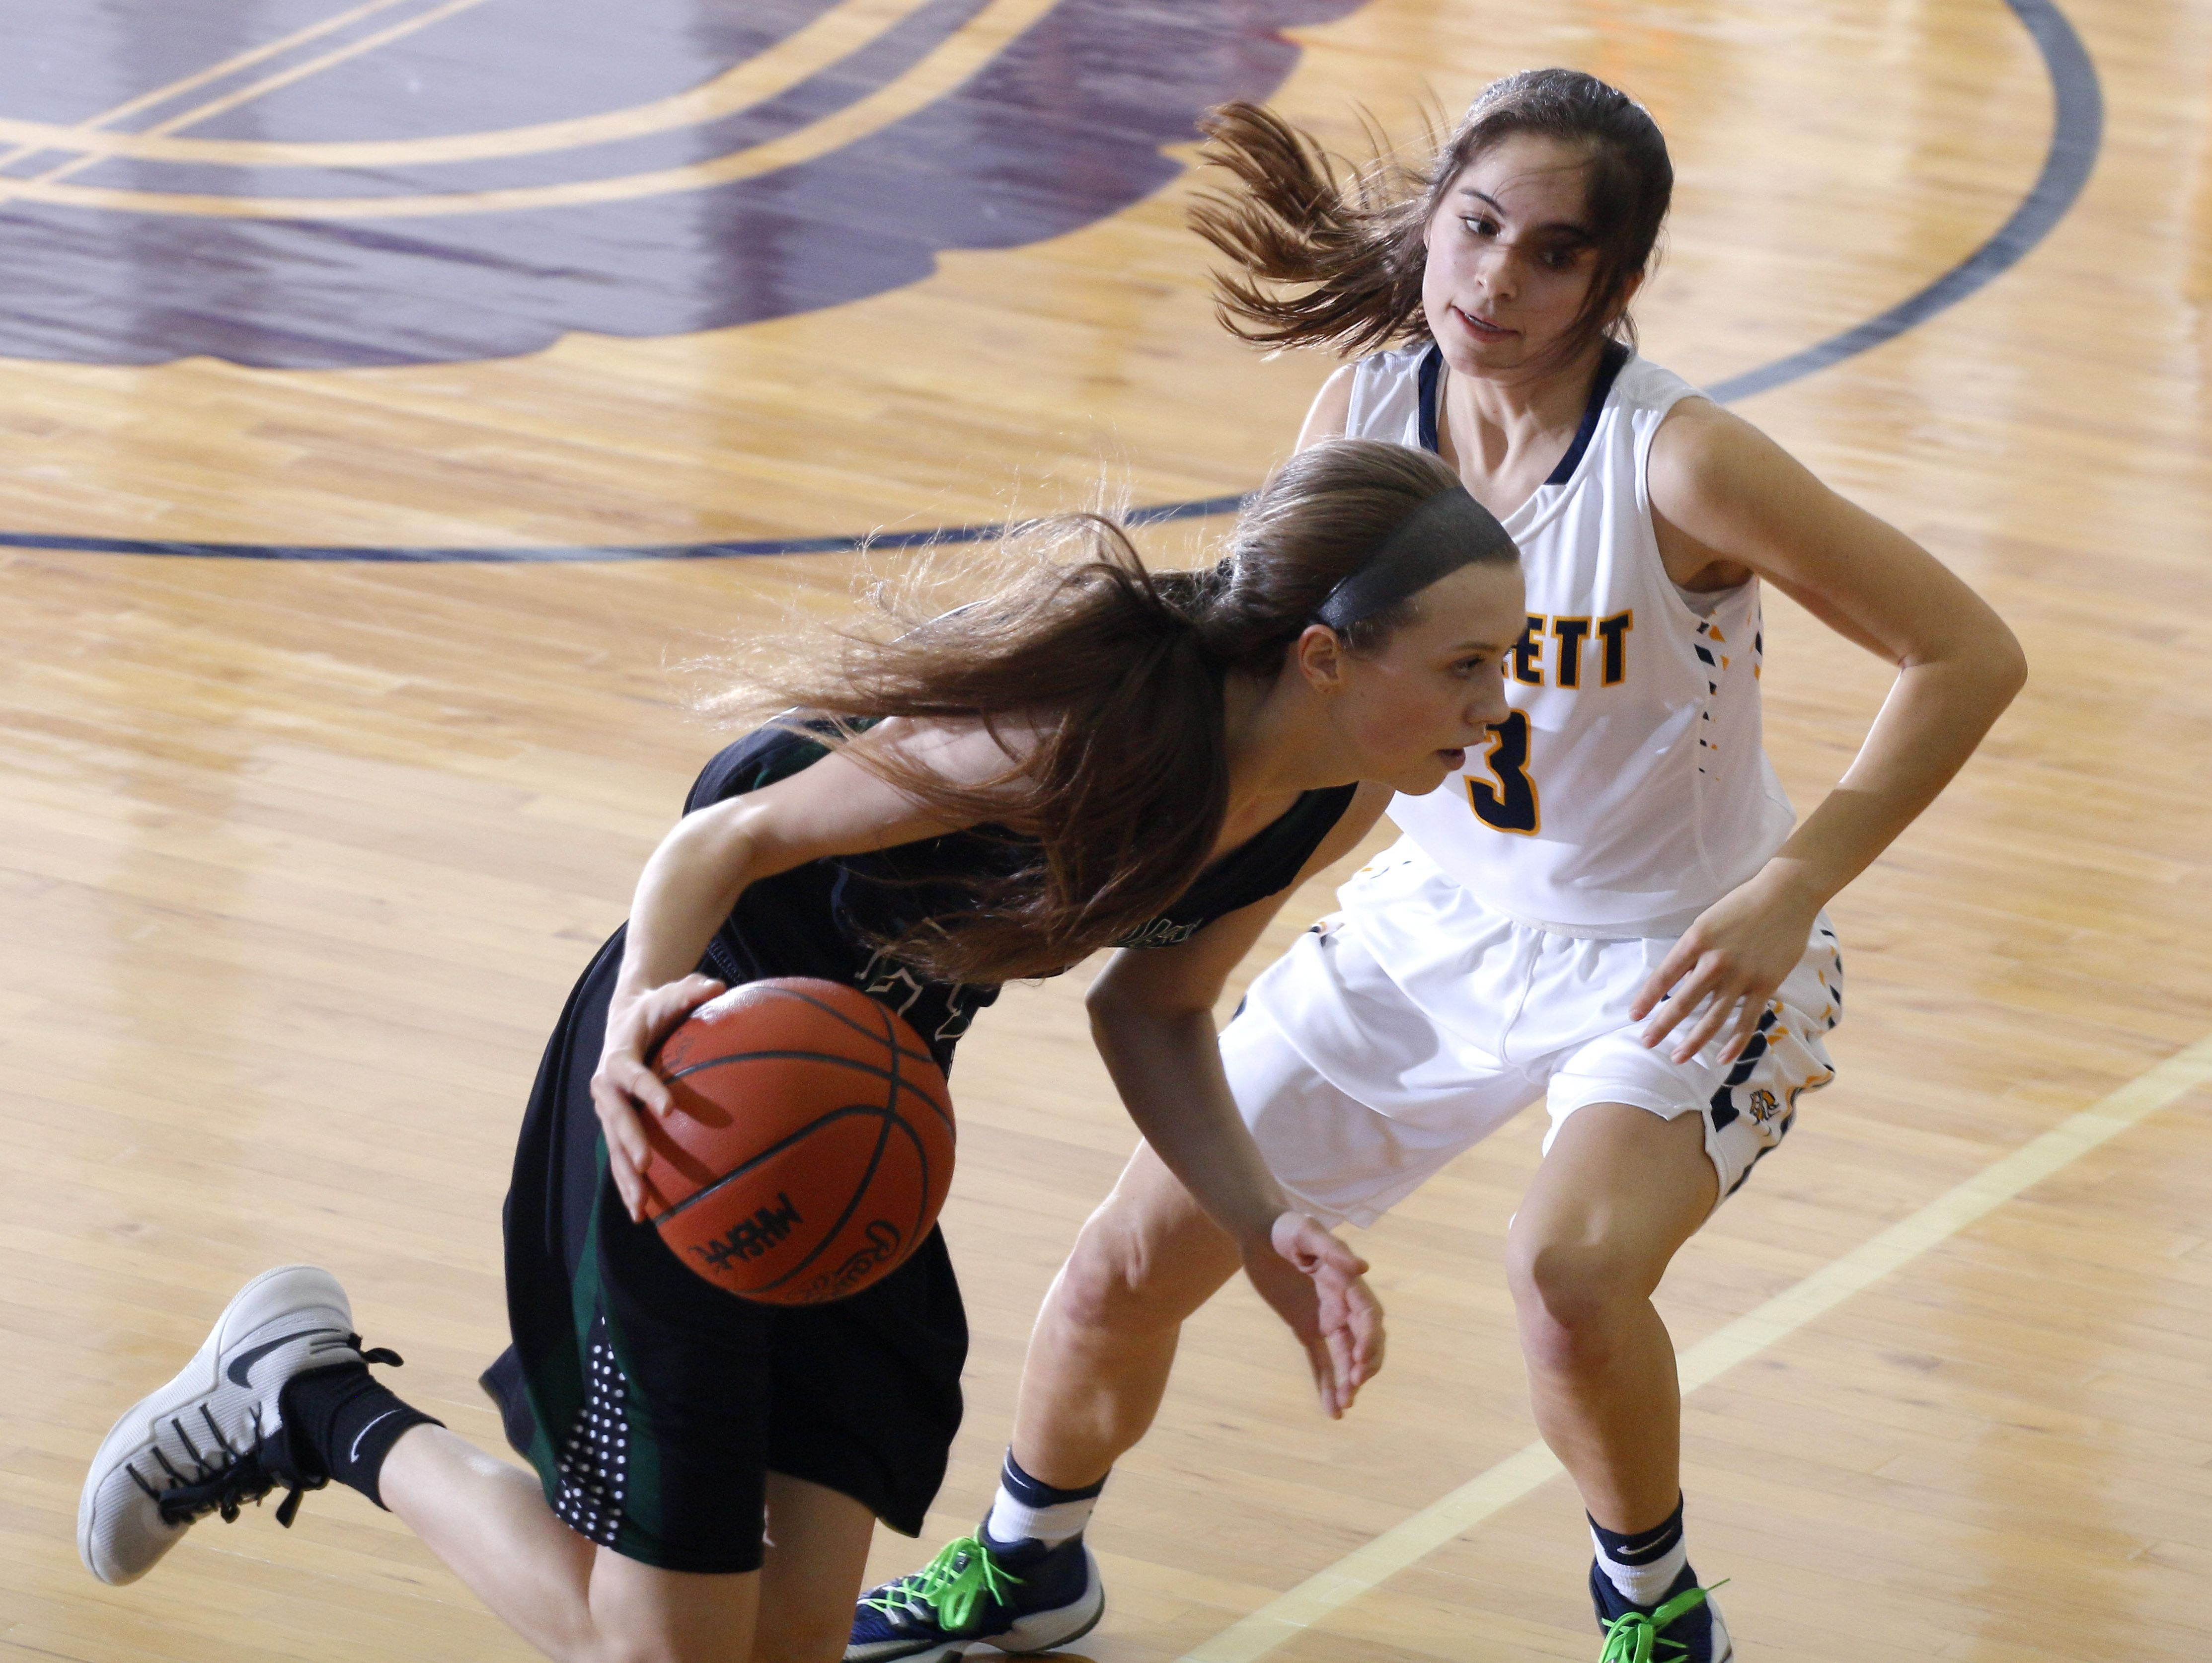 Williamston's Kenzie Lewis, left, drives past Haslett's Sophie Hall during their district semifinal game Wednesday, March 1, 2017, in Fowlerville, Mich. Williamston won 53-42.